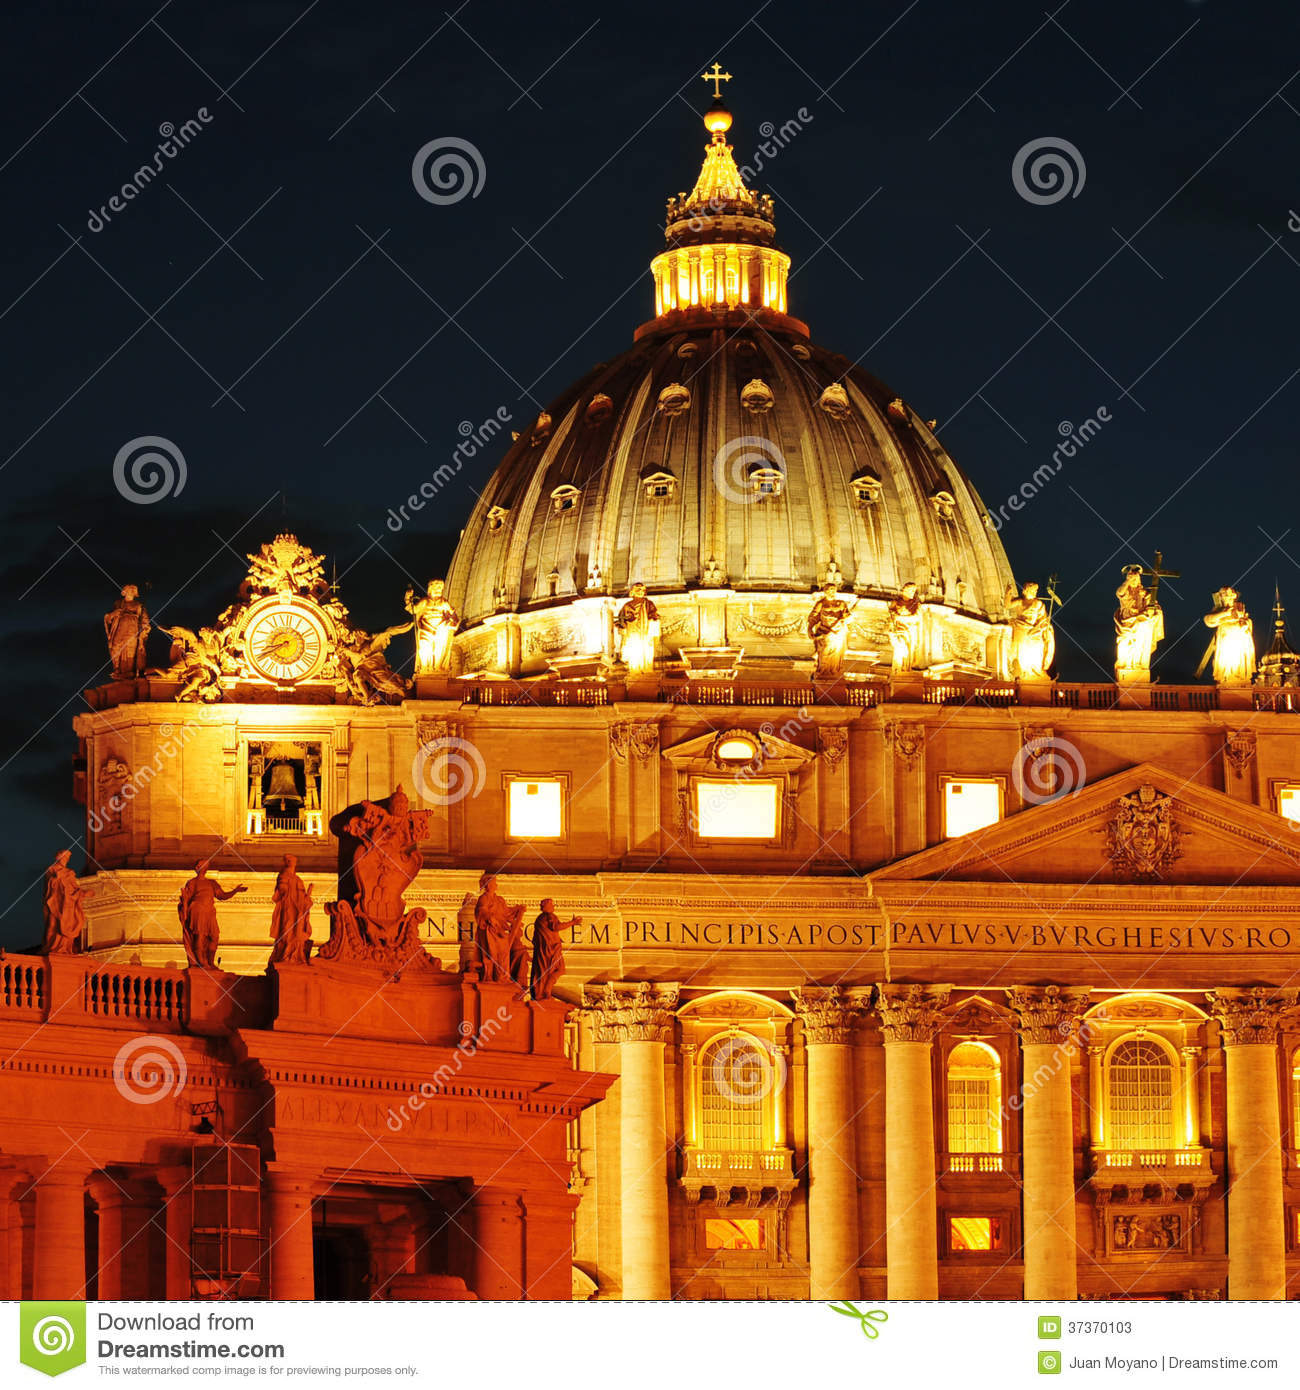 exploring basilicas and churches in rome essay 8 most beautiful churches in rome  (st john lateran) is one of four major basilicas in rome dedicated to john the baptist and john the evangelist, .